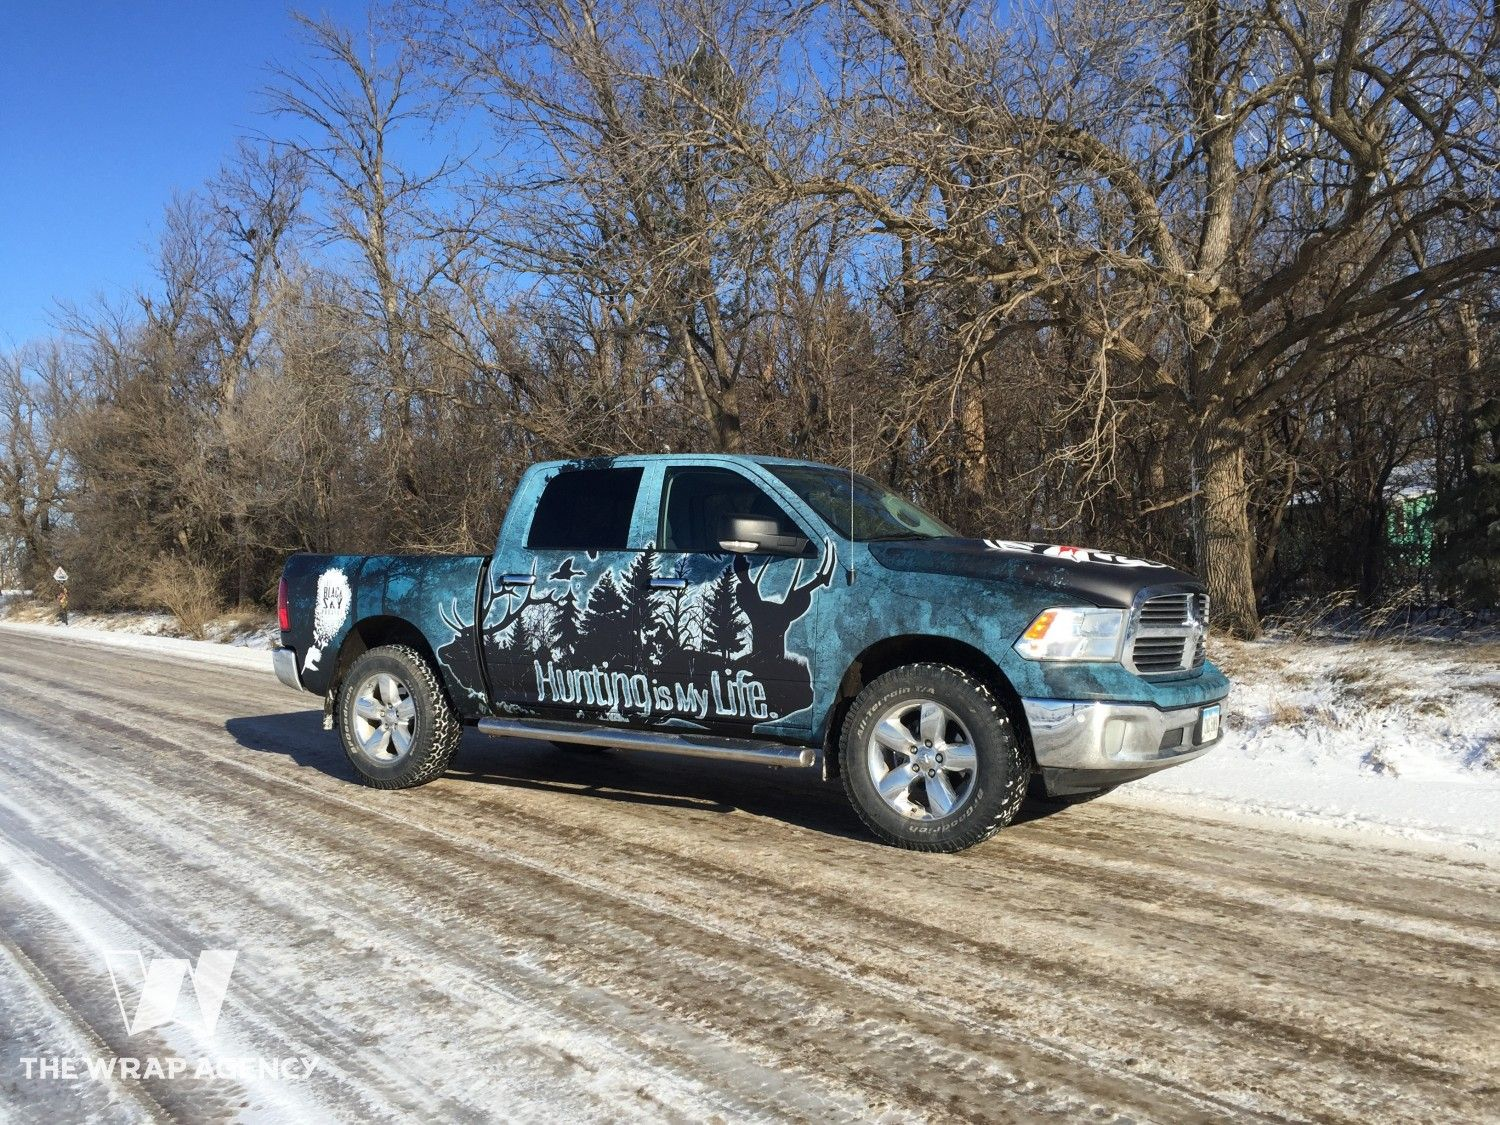 Hunting Is My Life Truck Wrap The Wrap Agency